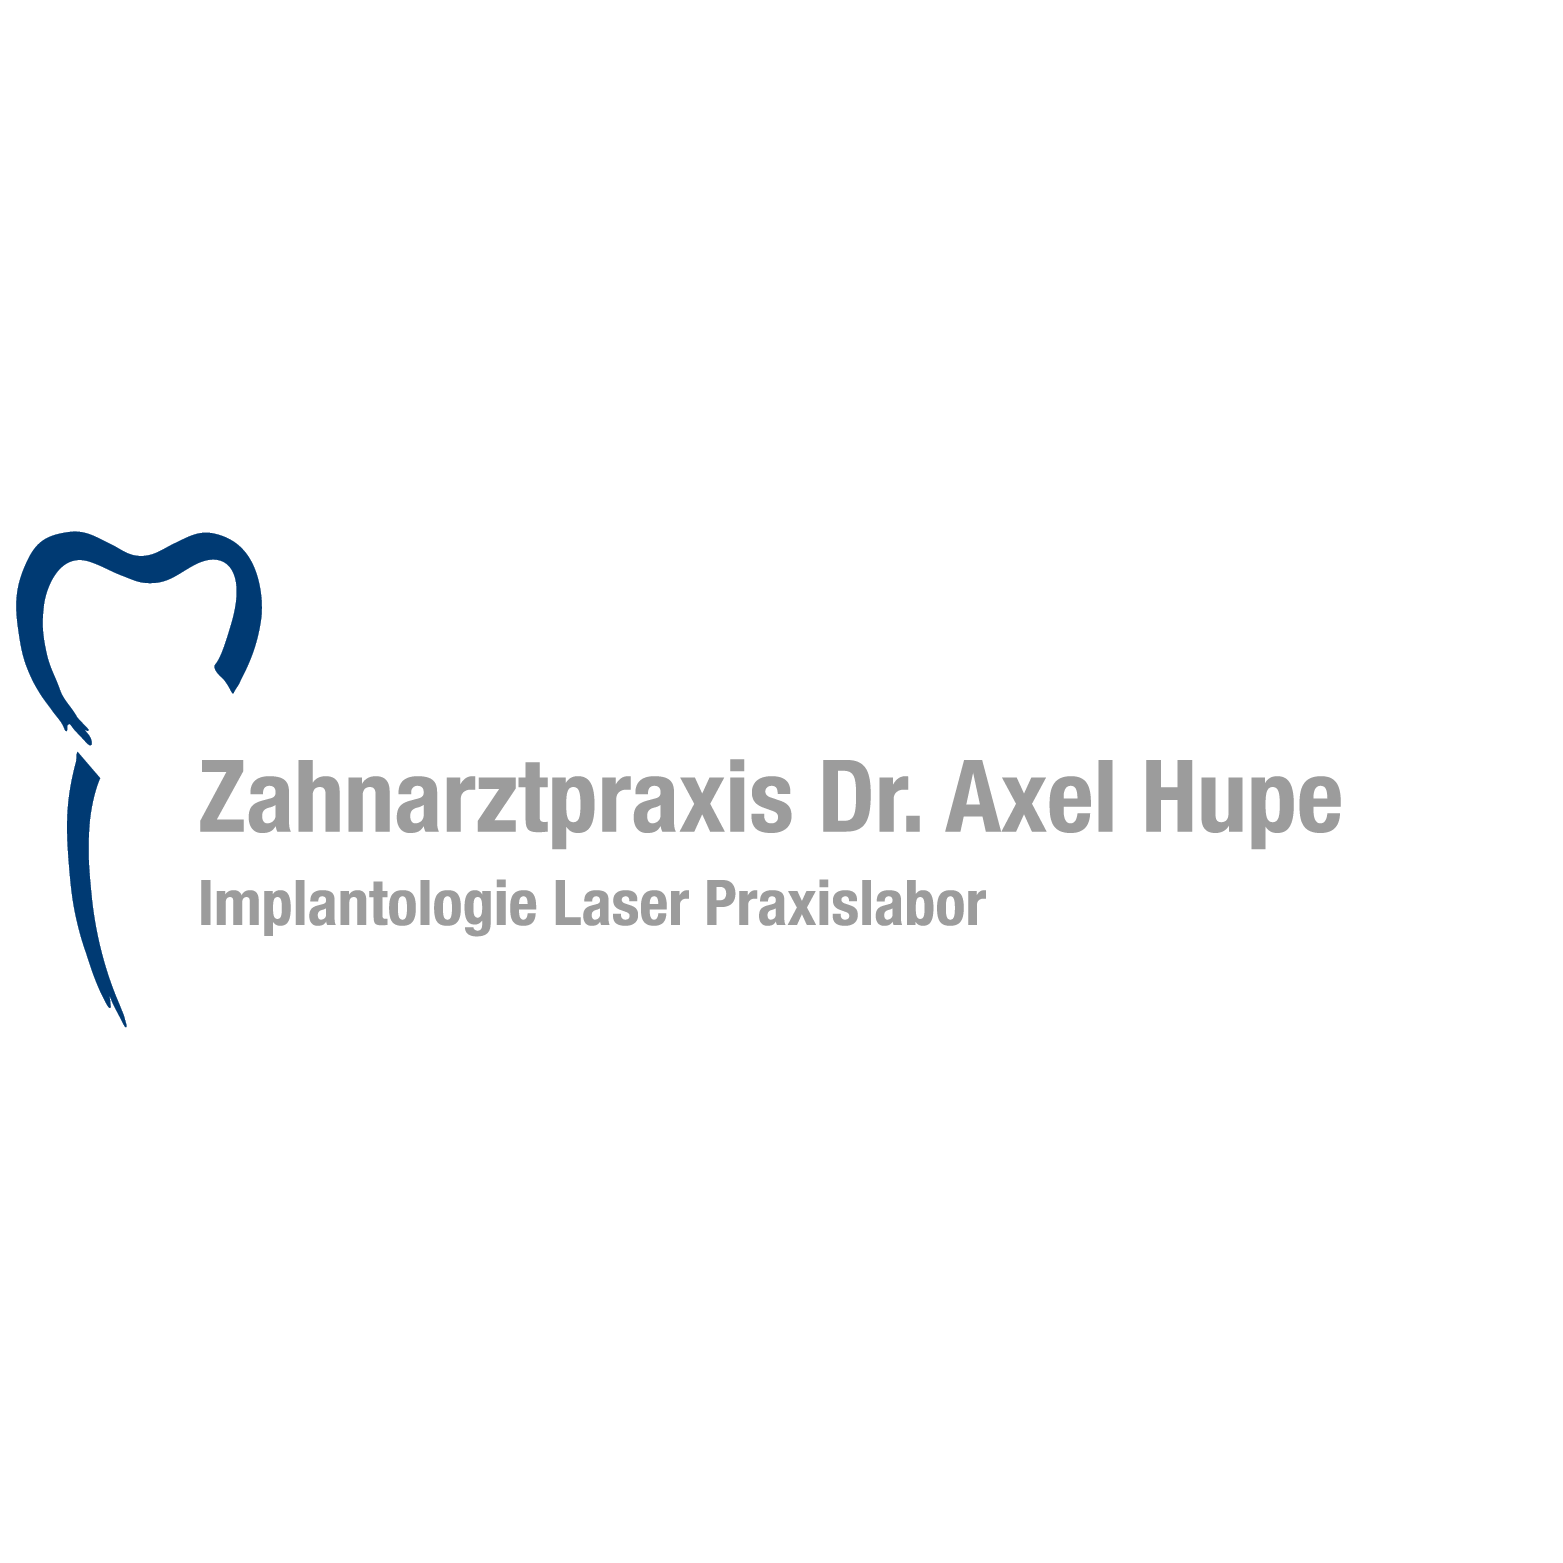 Bild zu Zahnarztpraxis Dr. Axel Hupe in Hannover in Hannover